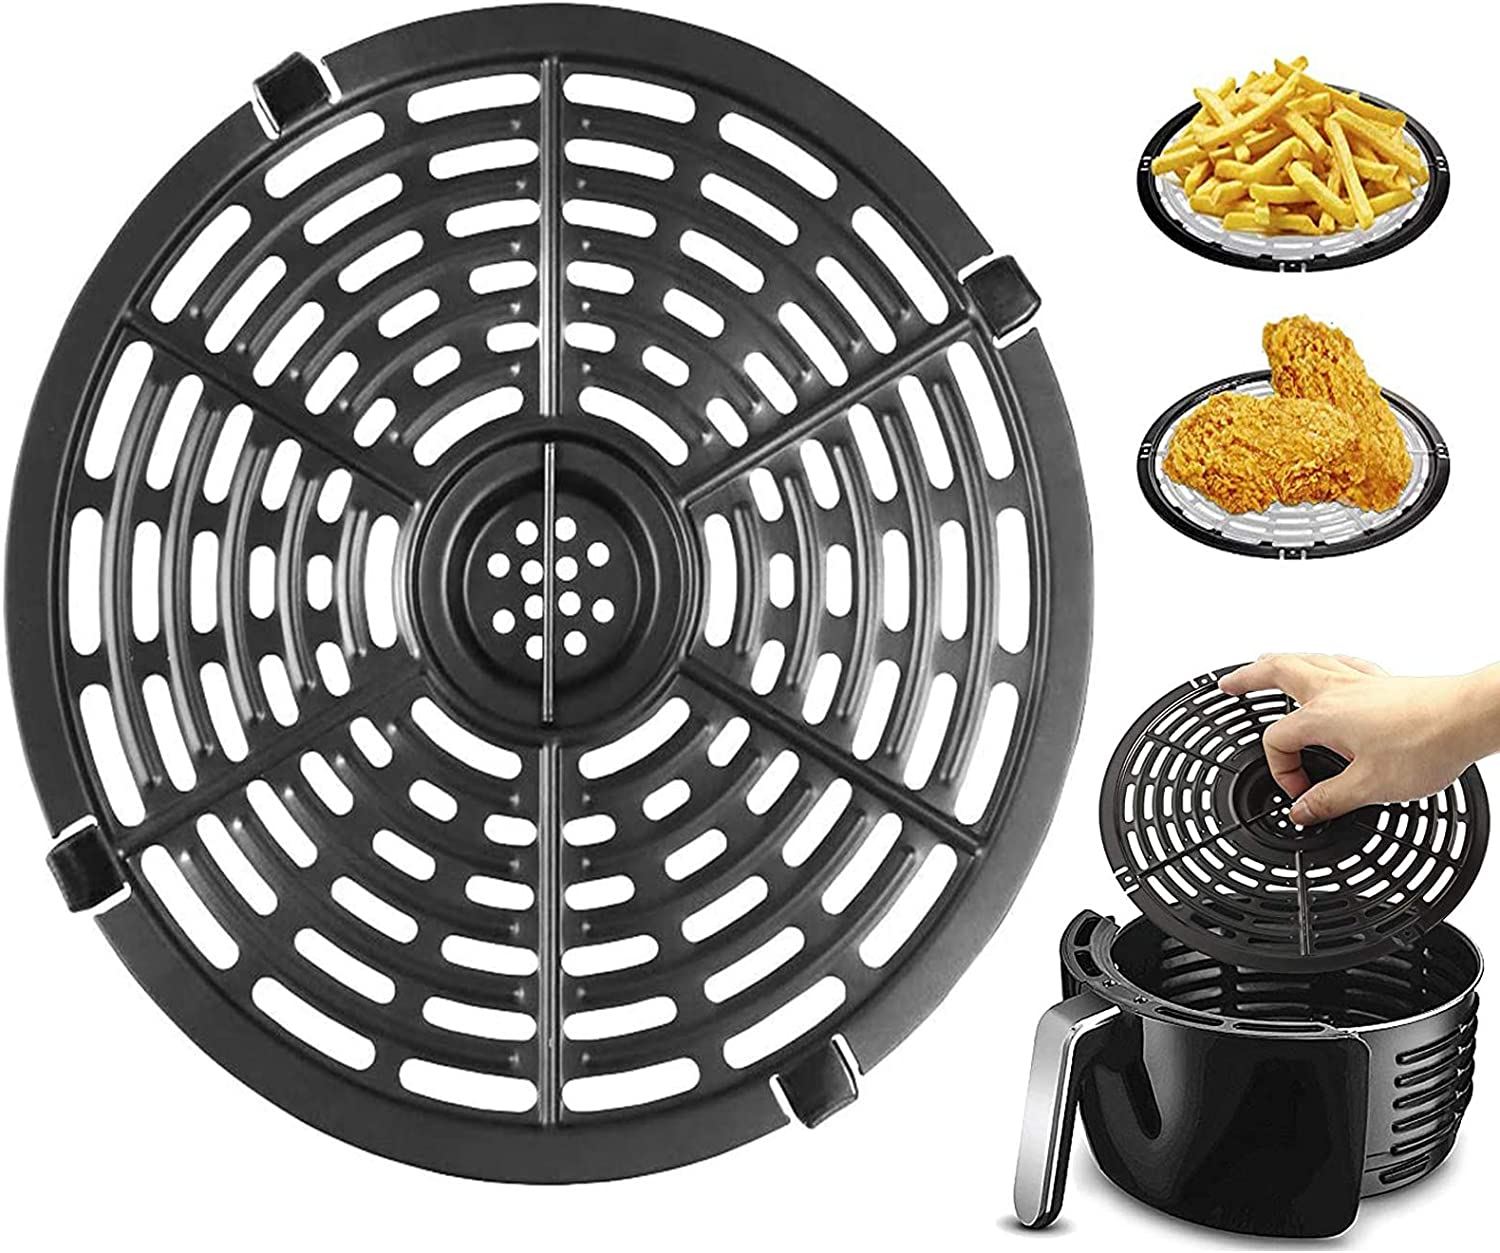 Air Fryer Grill Pan Replacement, 8.26'' Air Fryers Accessories, Non-Stick Fry Pan Crisper Plate For Gowise, Powerxl, Gourmia, Dash, Emeril Lagasse Air Fryer Pans, Dishwasher Safe (8 inch)